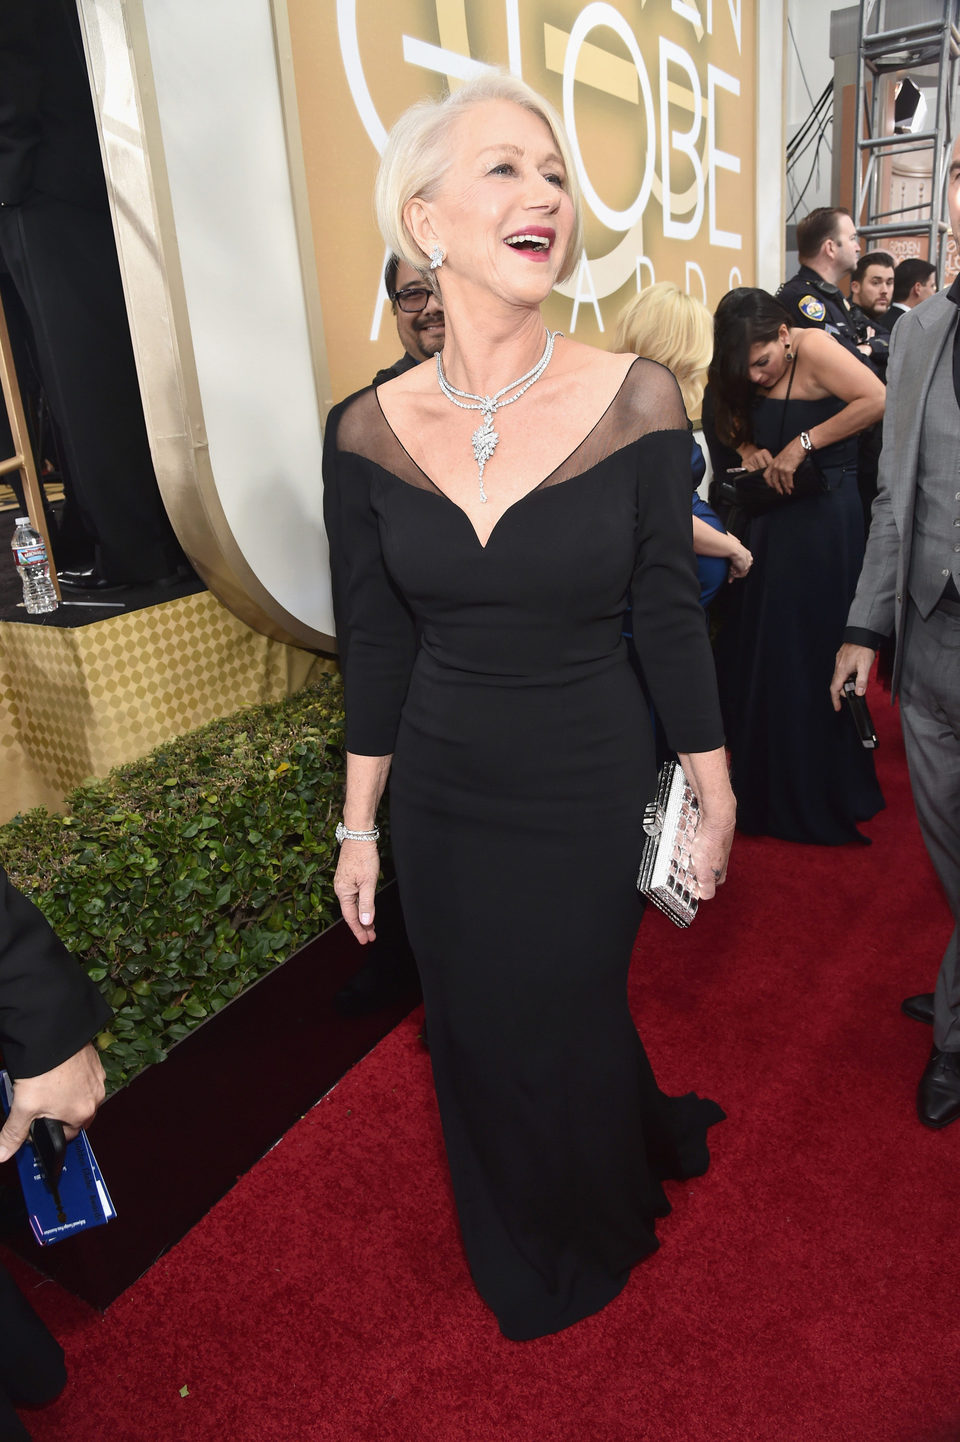 Helen Mirren in the 2016 Golden Globes red carpet